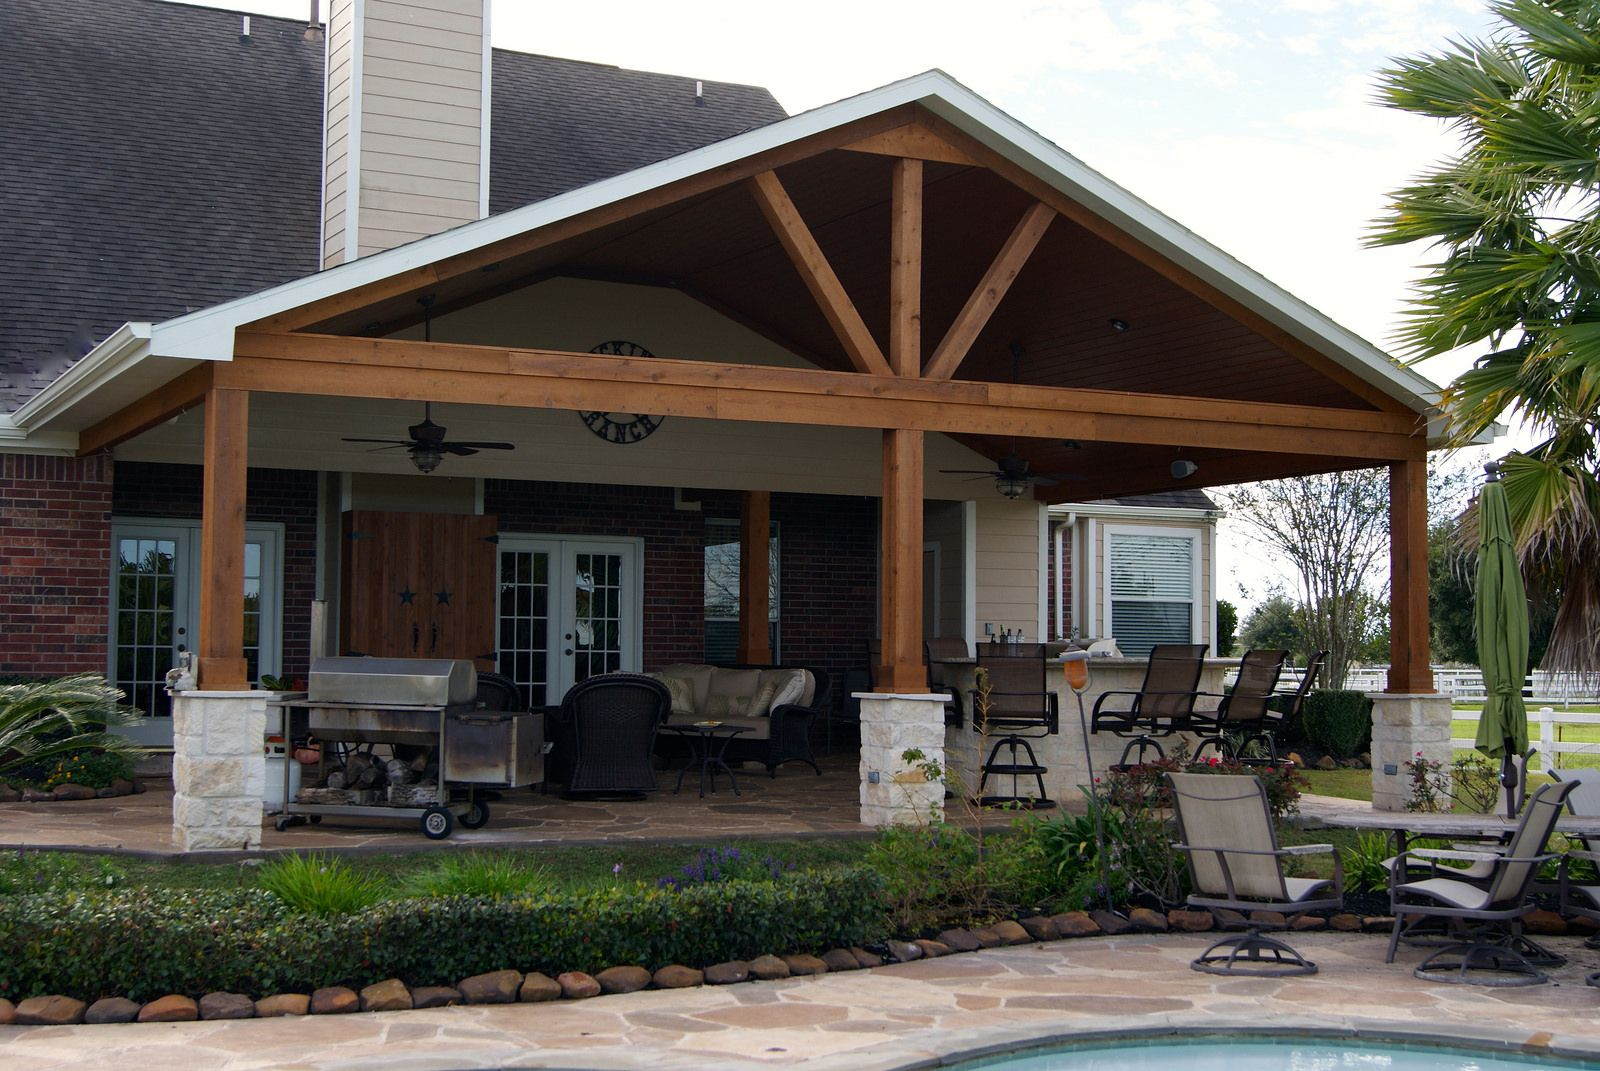 Gable Roof Patio Cover in Remington Trails Katy | Patios, Porch and ...